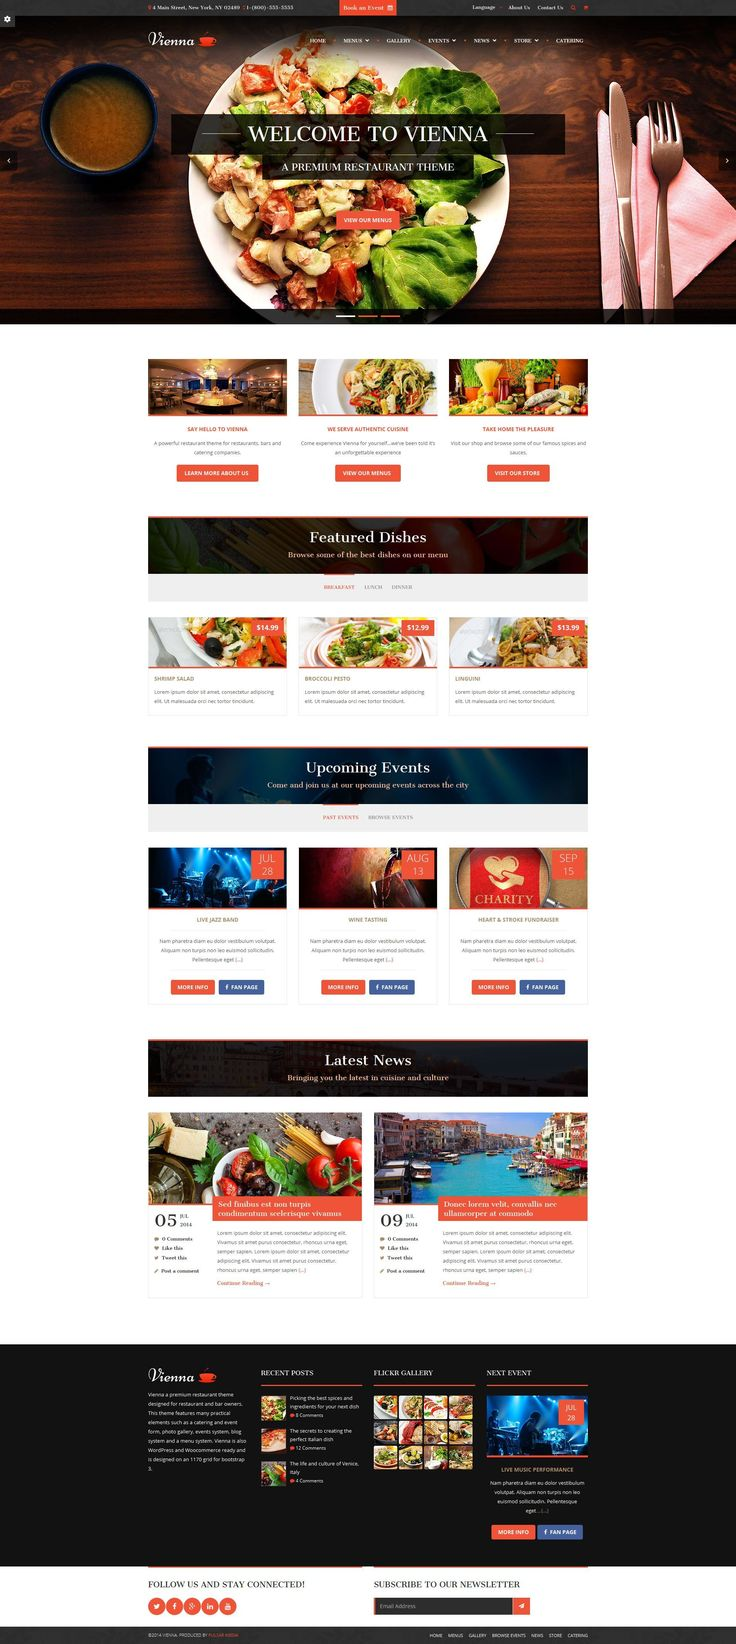 Vienna is a premium restaurant WordPress theme and is designed for anyone in the restaurant and/or hospitality industry. Vienna was designed for restaurant and bar owners, banquet halls, catering companies, hospitality venues and professional bloggers who cater to the food niche.